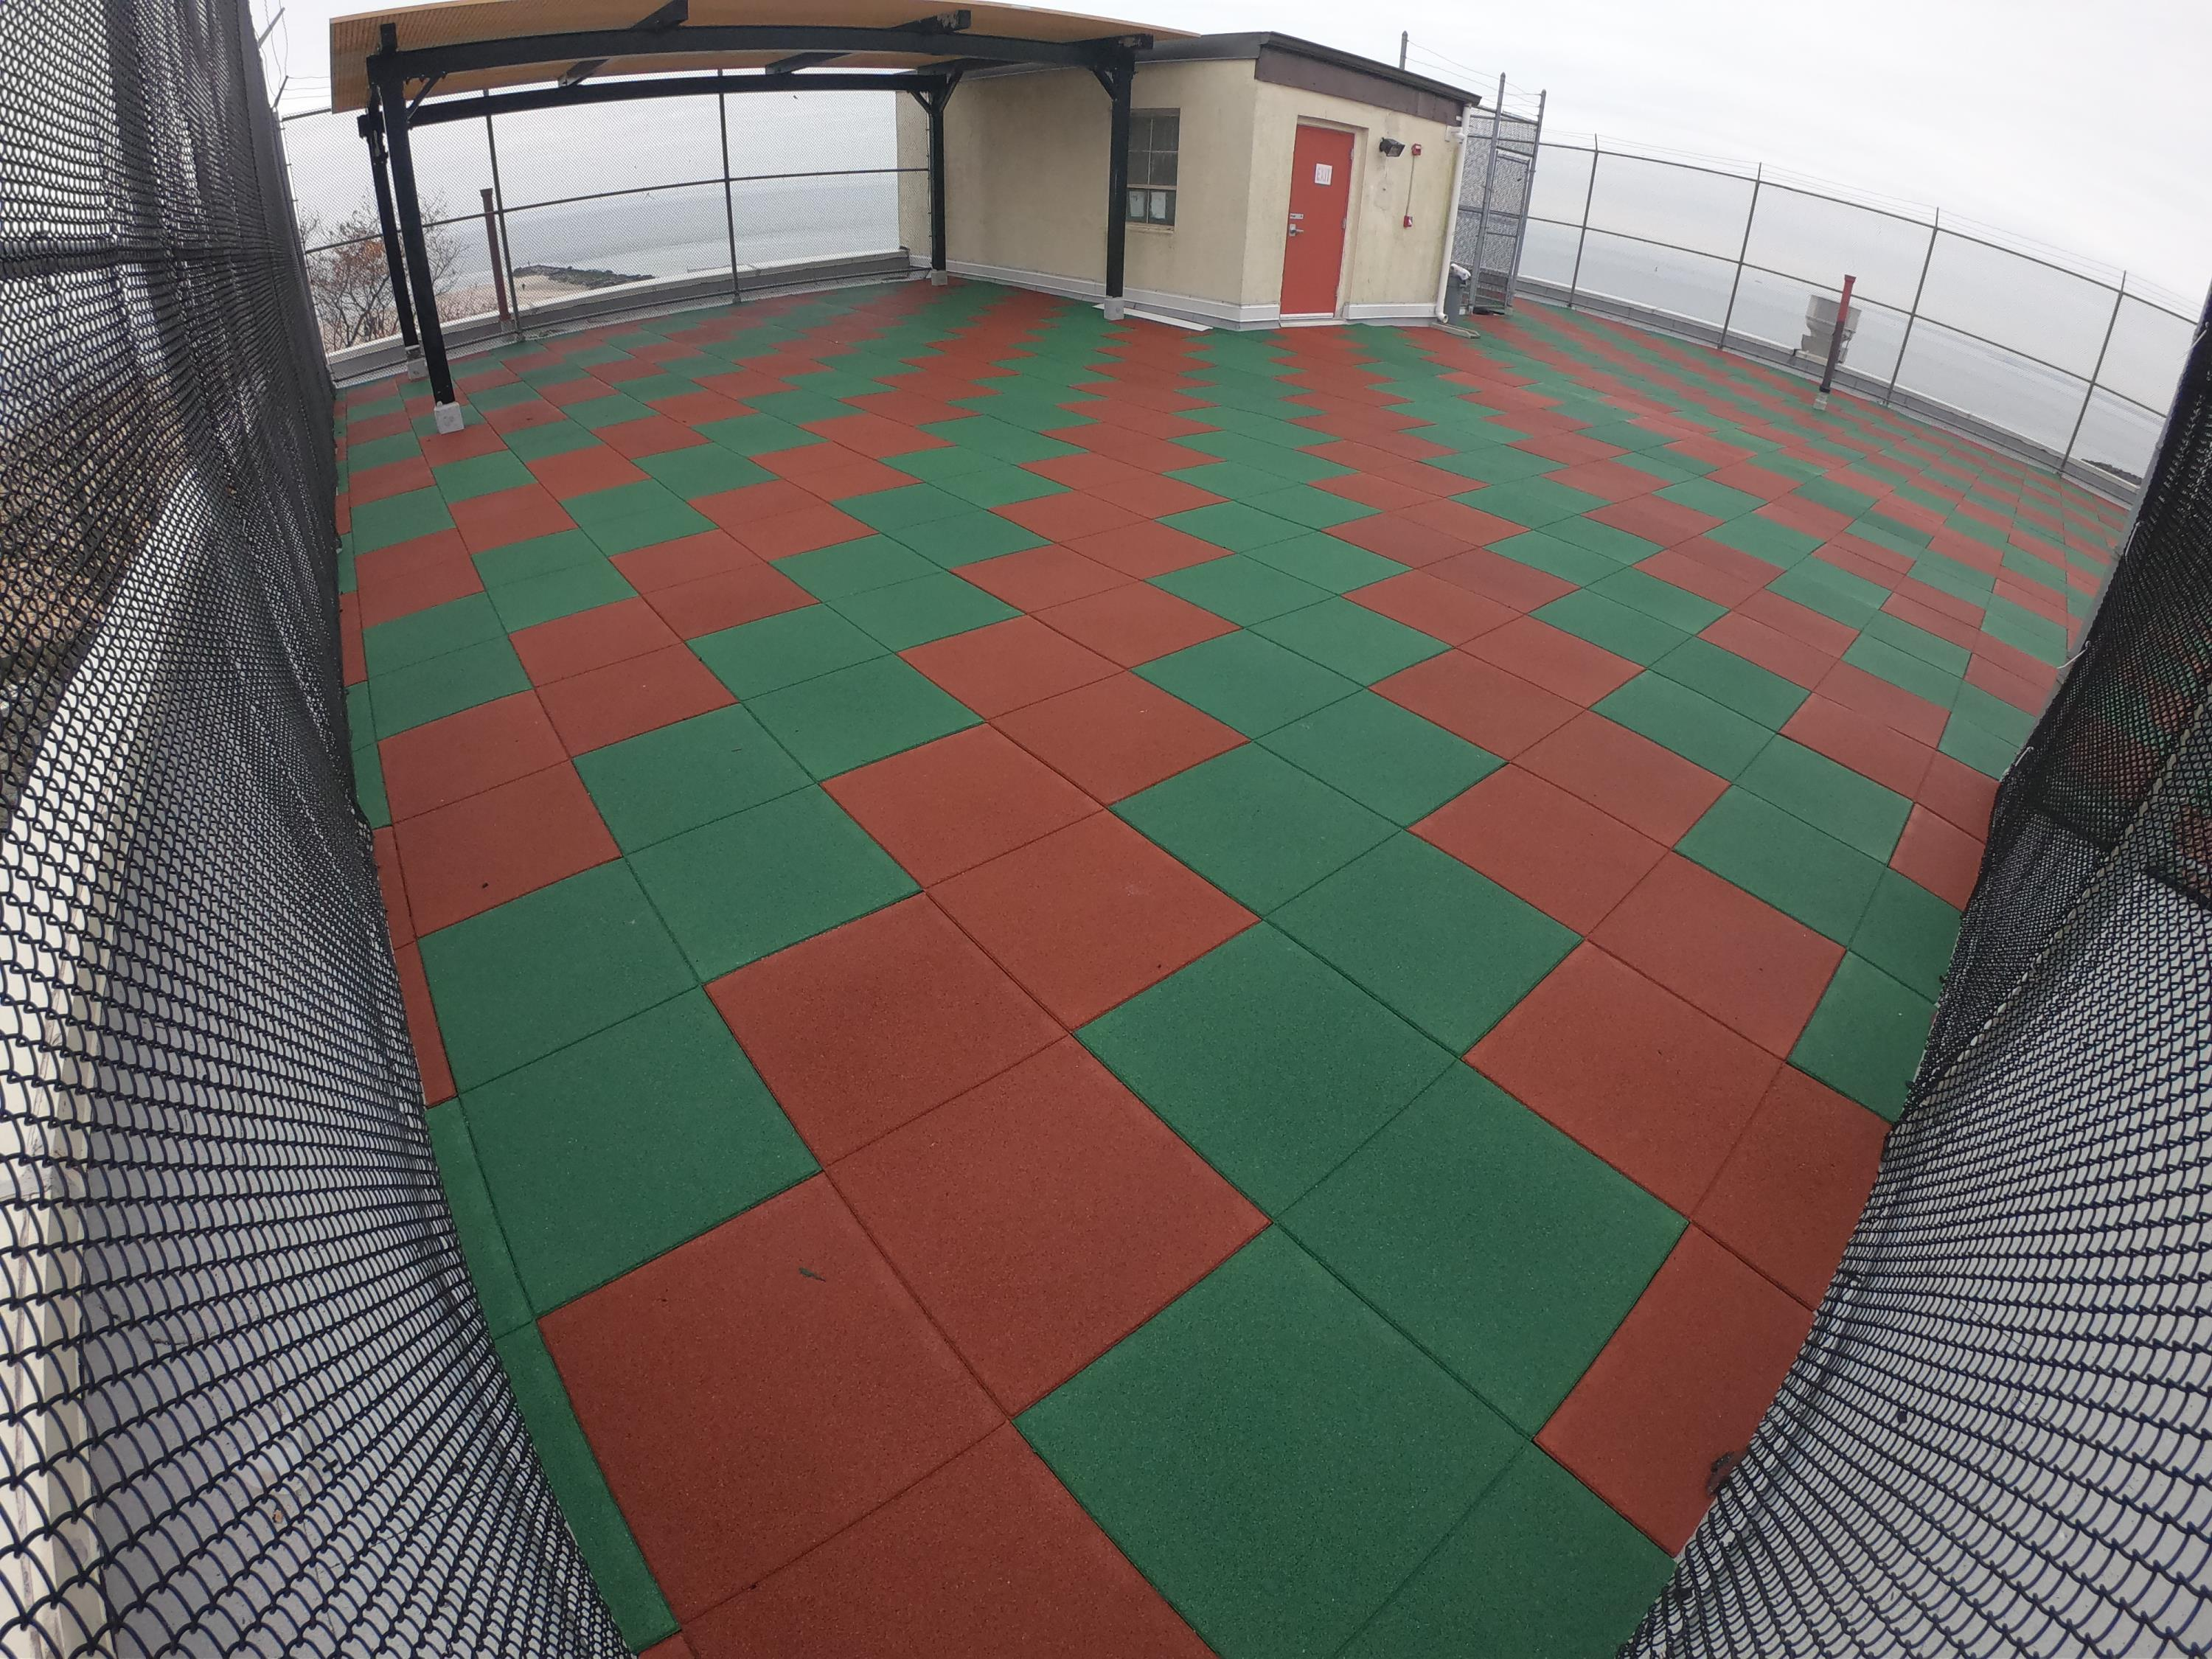 PAL School Rooftop Playground Tiles MAIN